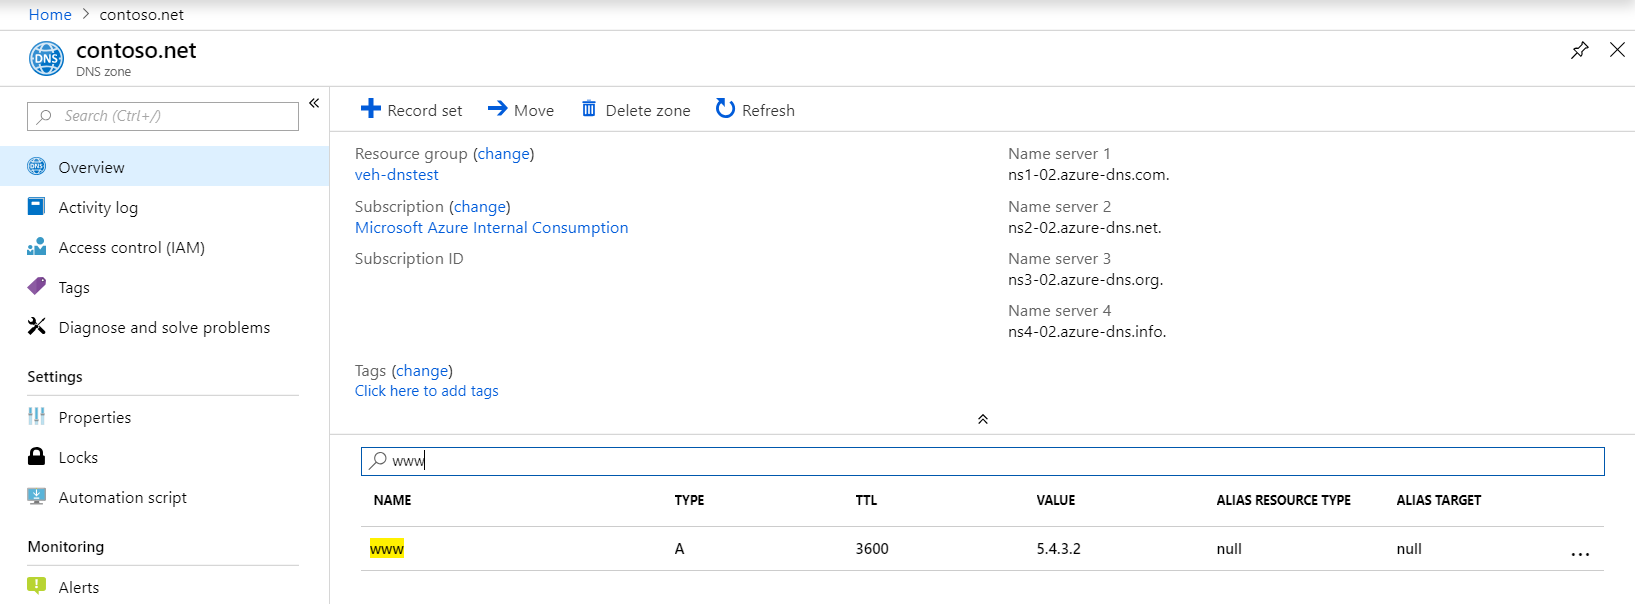 Manage DNS record sets and records with Azure DNS | Microsoft Docs